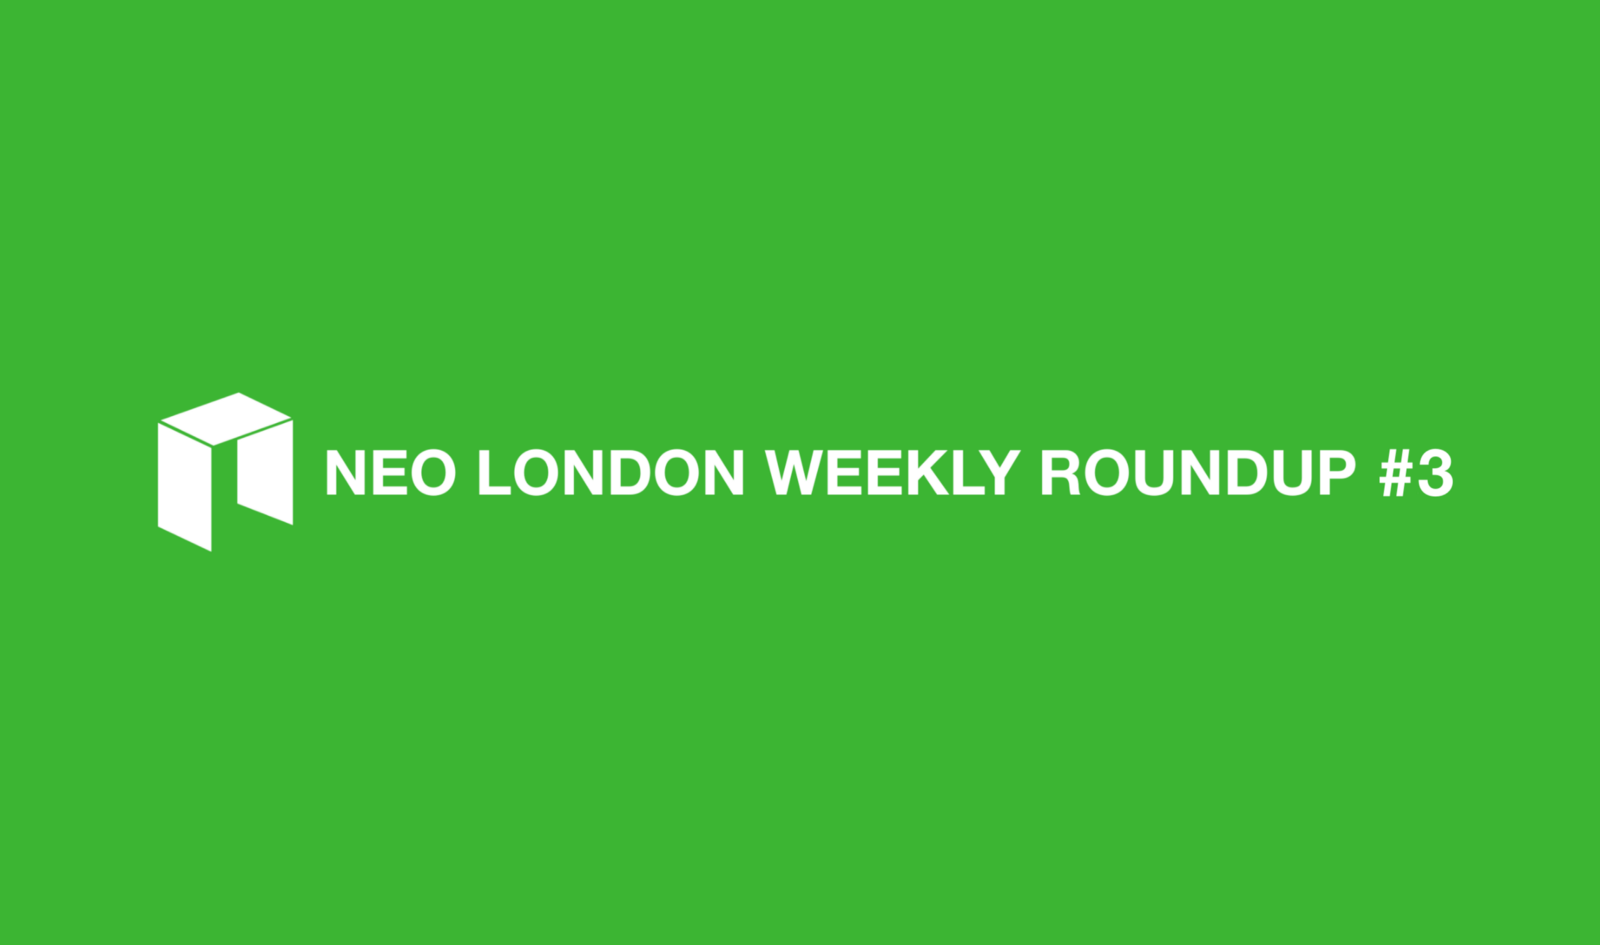 To acquire Roundup weekly 3 picture trends